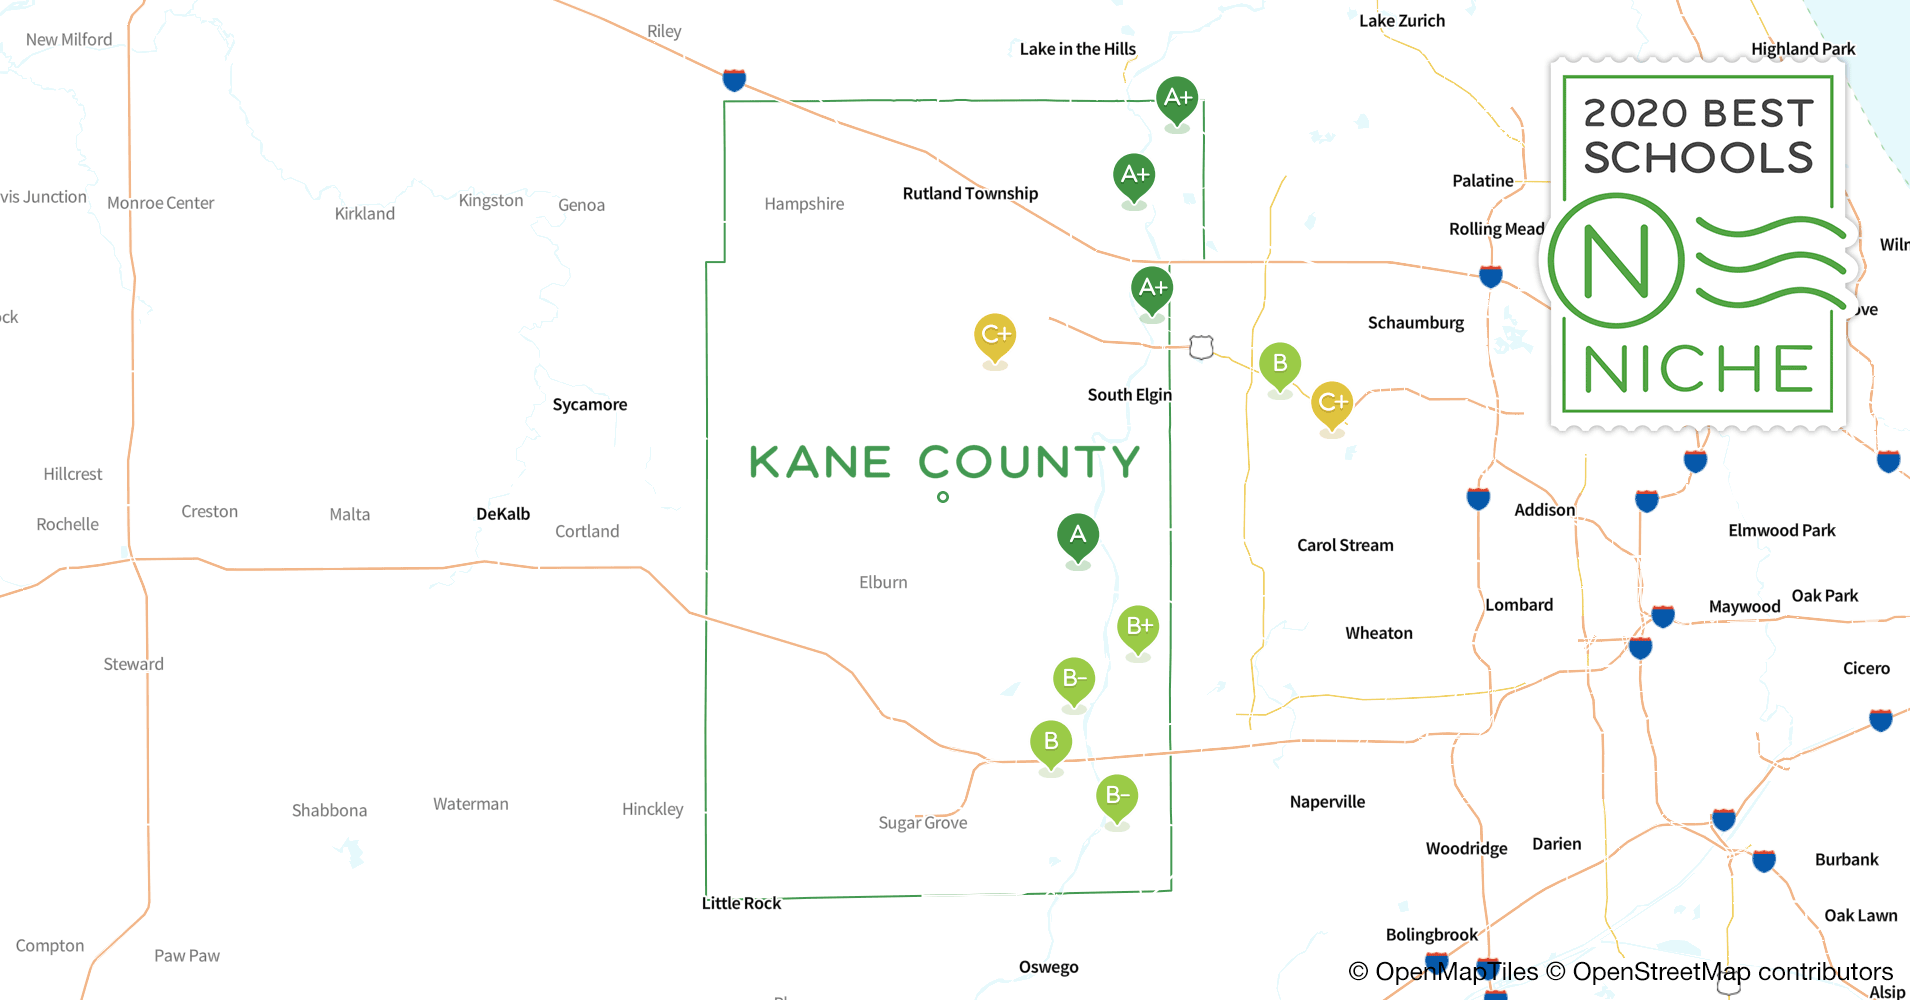 Districts in Kane County, IL - Niche on wayne county district map, dekalb county district map, bexar county district map, will county district map, la crosse county district map, henry county district map, christian county district map, kankakee county district map, dane county district map, knox county district map, ozaukee county district map, kitsap county district map, richland county district map, kern county district map, carroll county district map, effingham county district map, sangamon county district map, brazoria county district map, fulton county district map, williamson county district map,